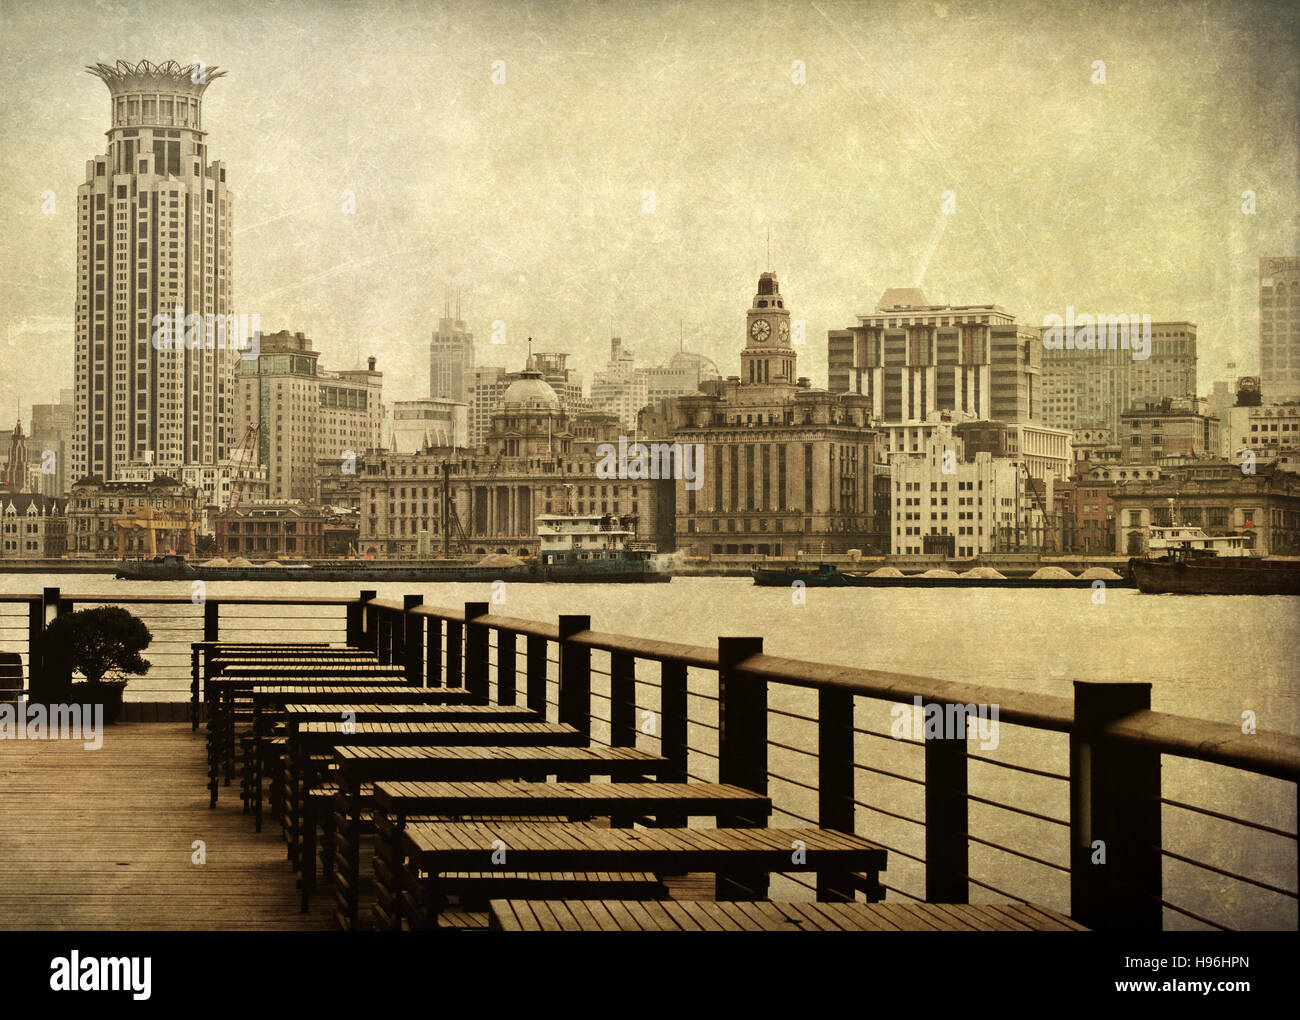 Shanghai's Bund from across the Pudong River aged with texture to provide a historic feel - Stock Image